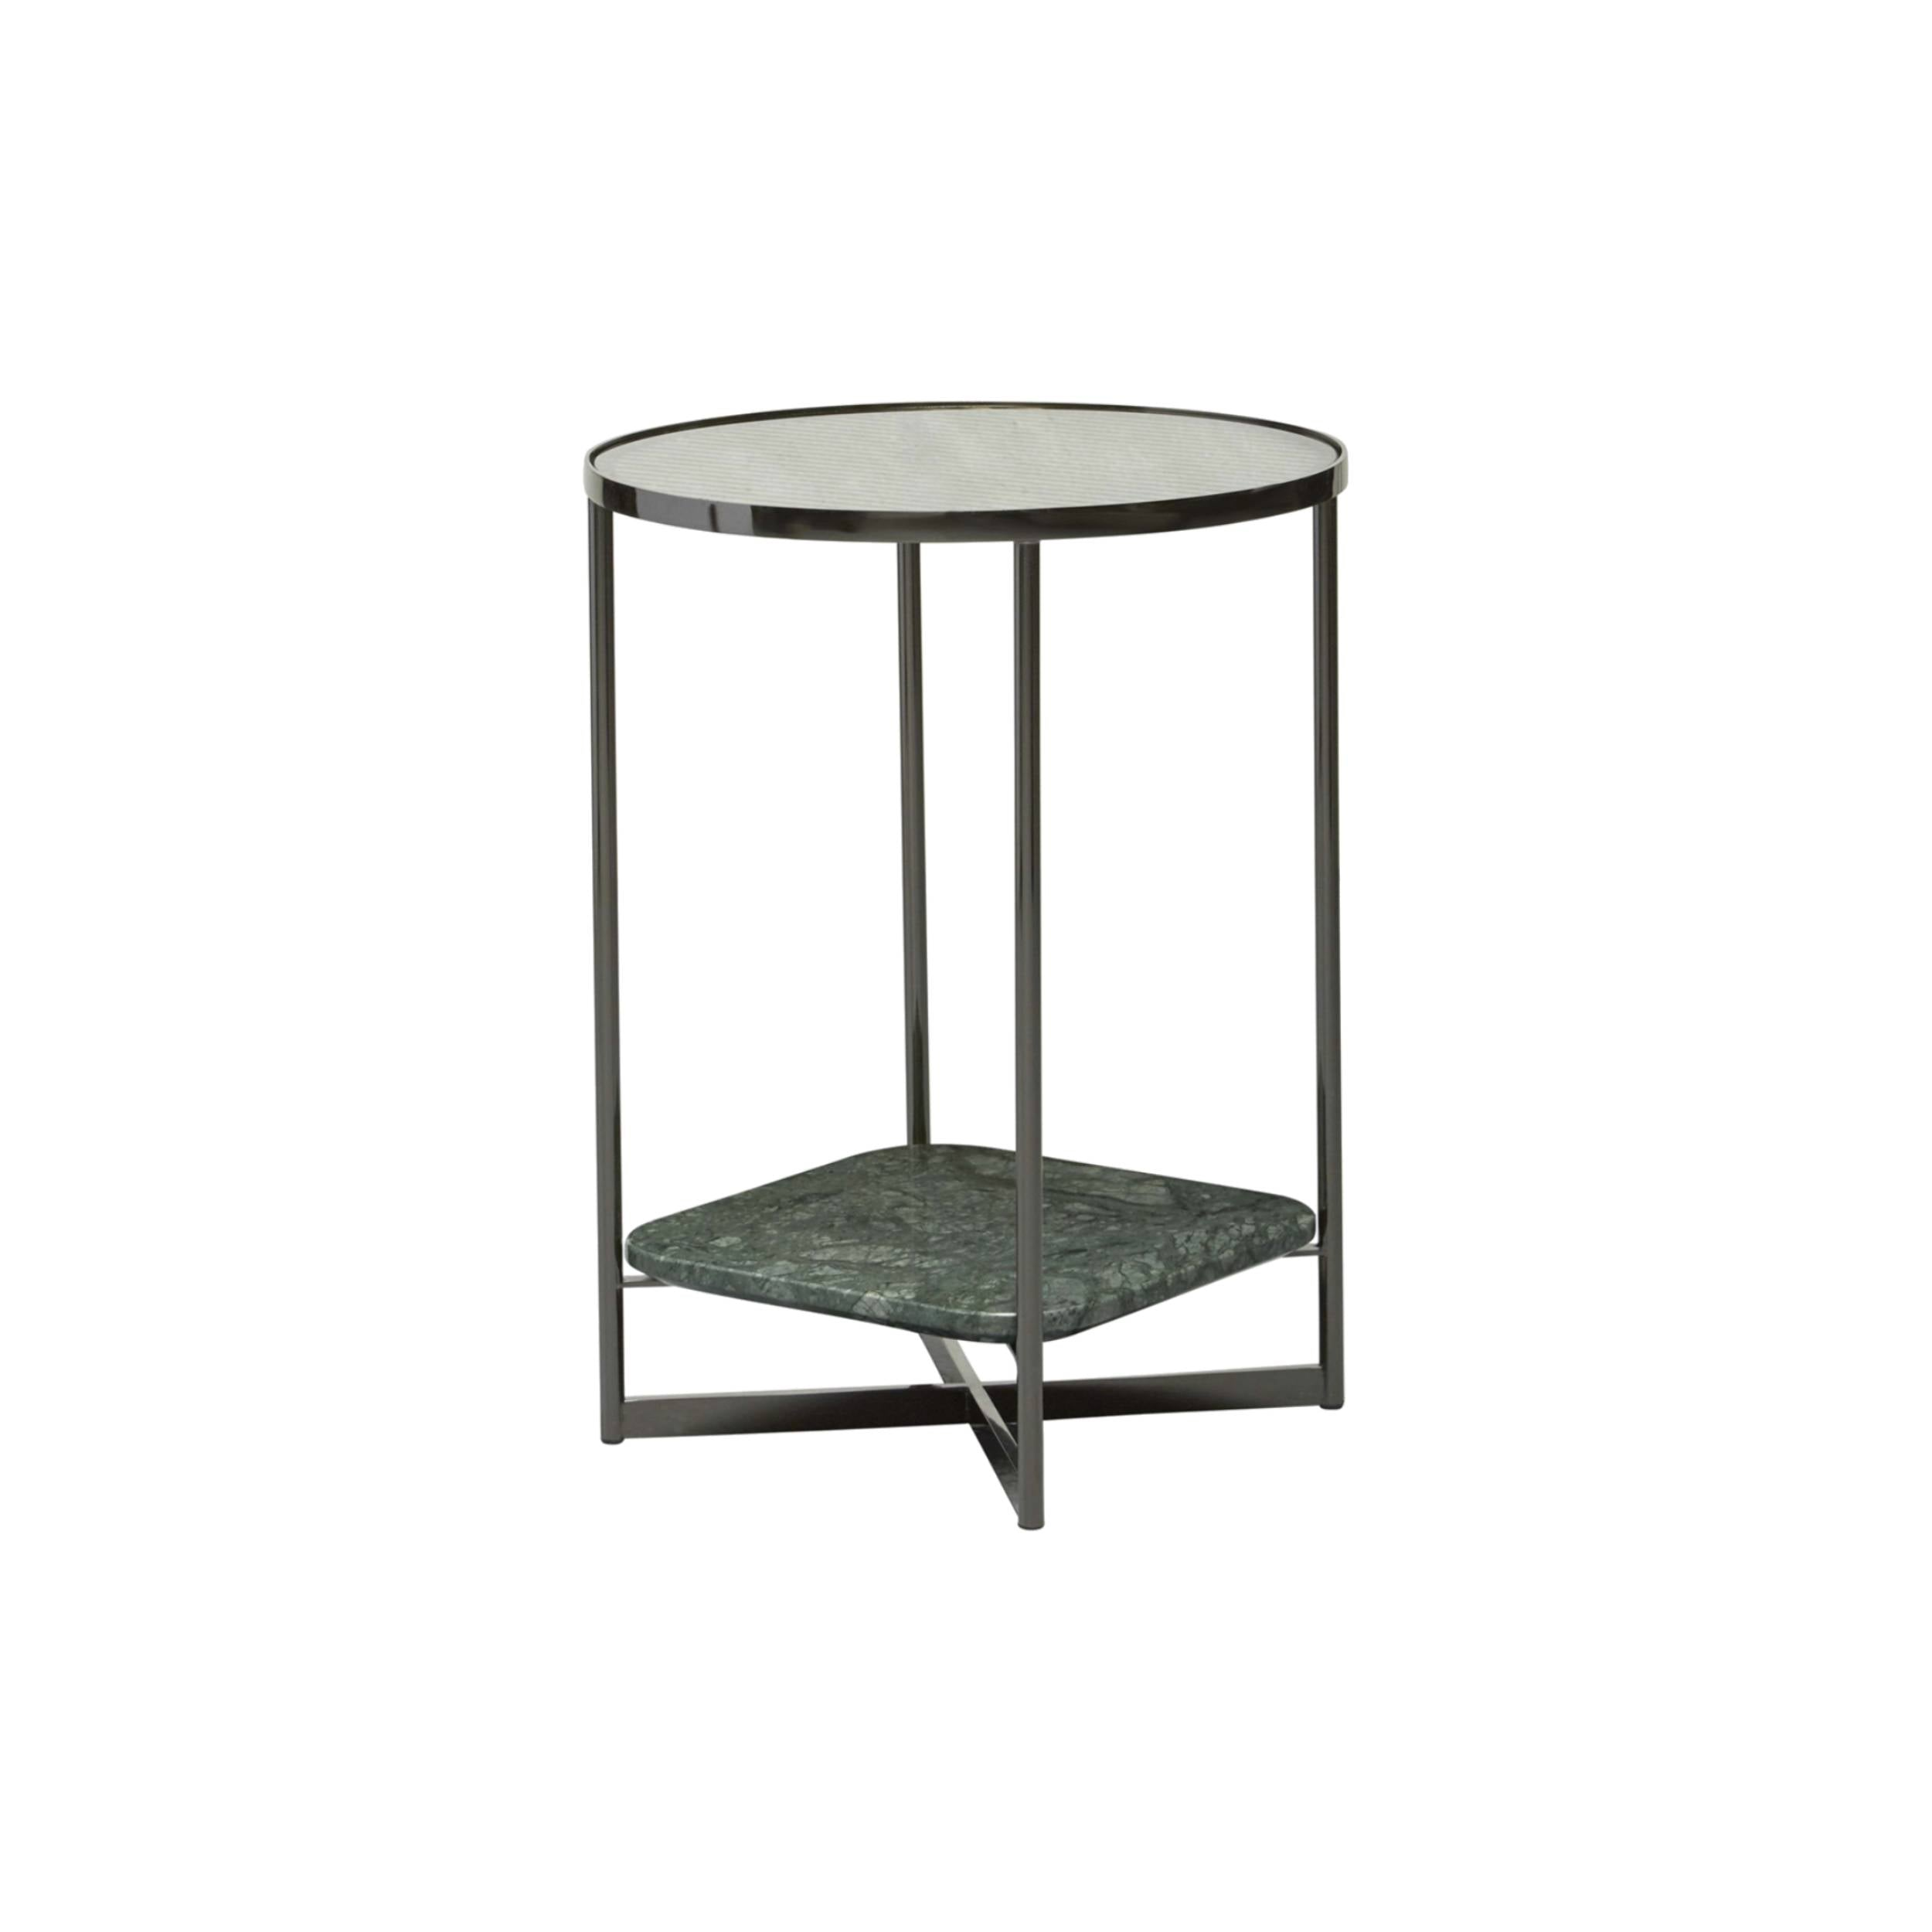 Mohana Side Table Small: Black Chrome + Fluted Glass + Green Marble